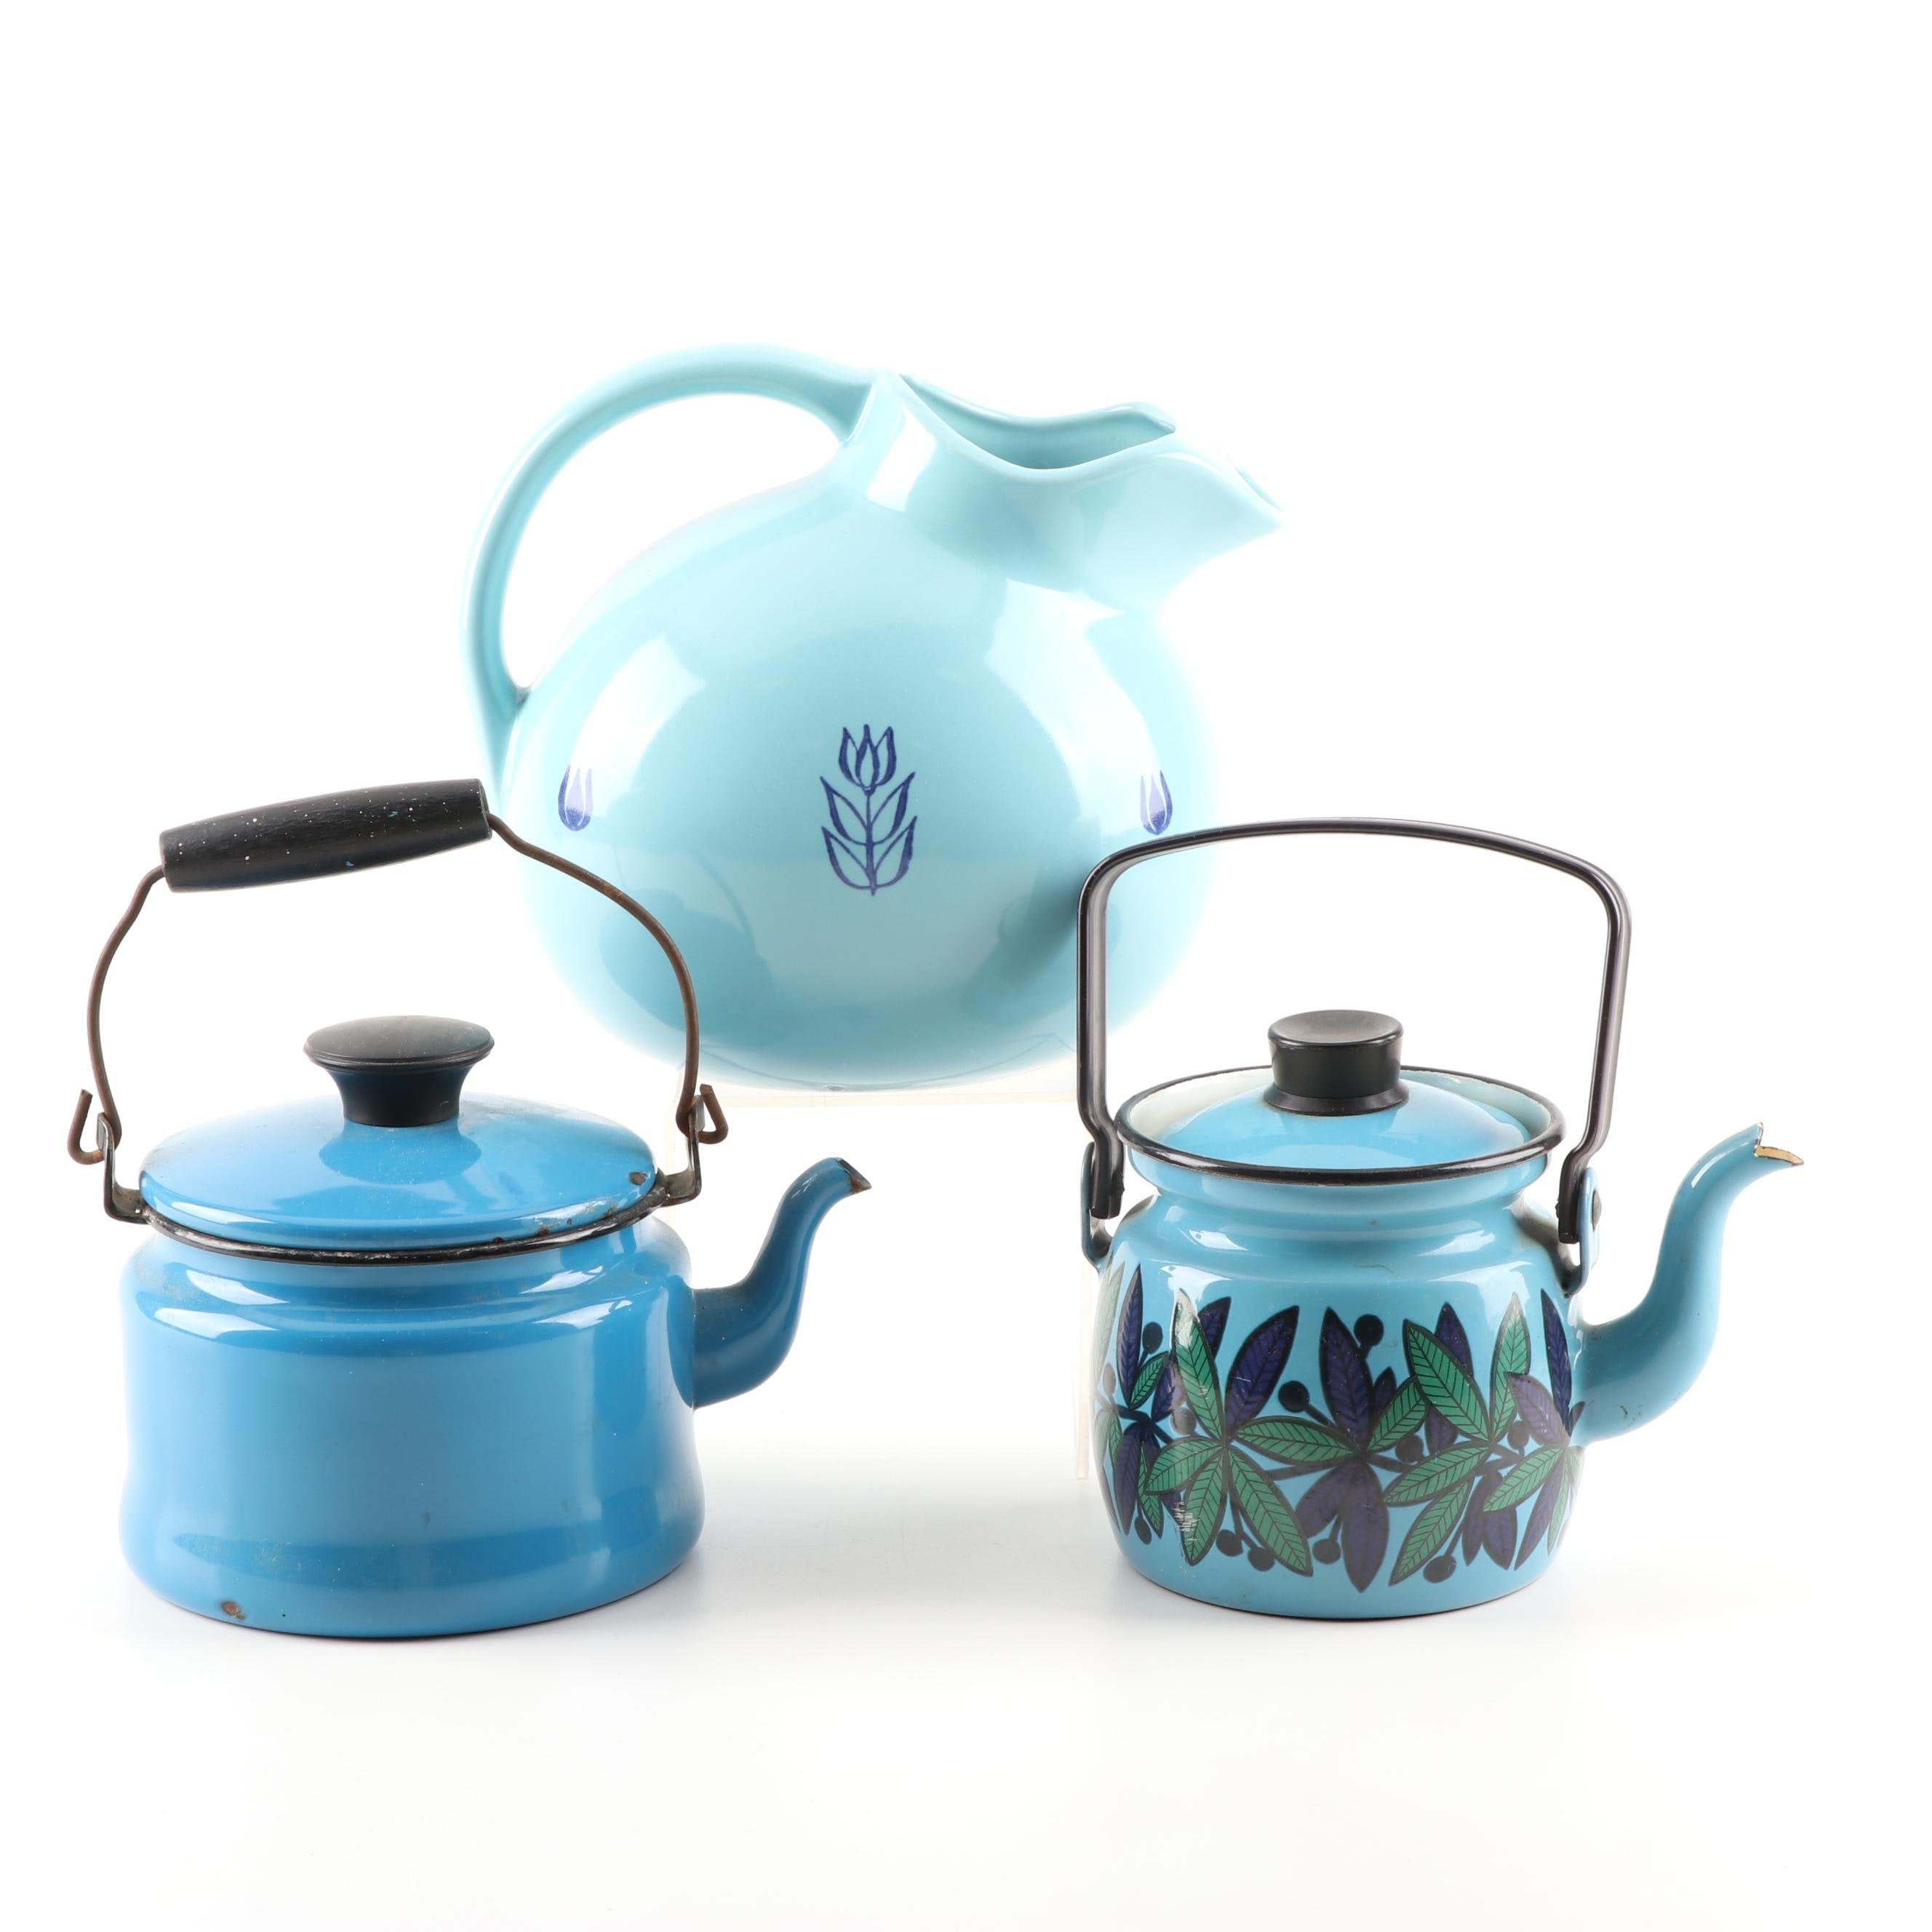 Vintage Ceramic and Metal Tea Pots Featuring Hull USA